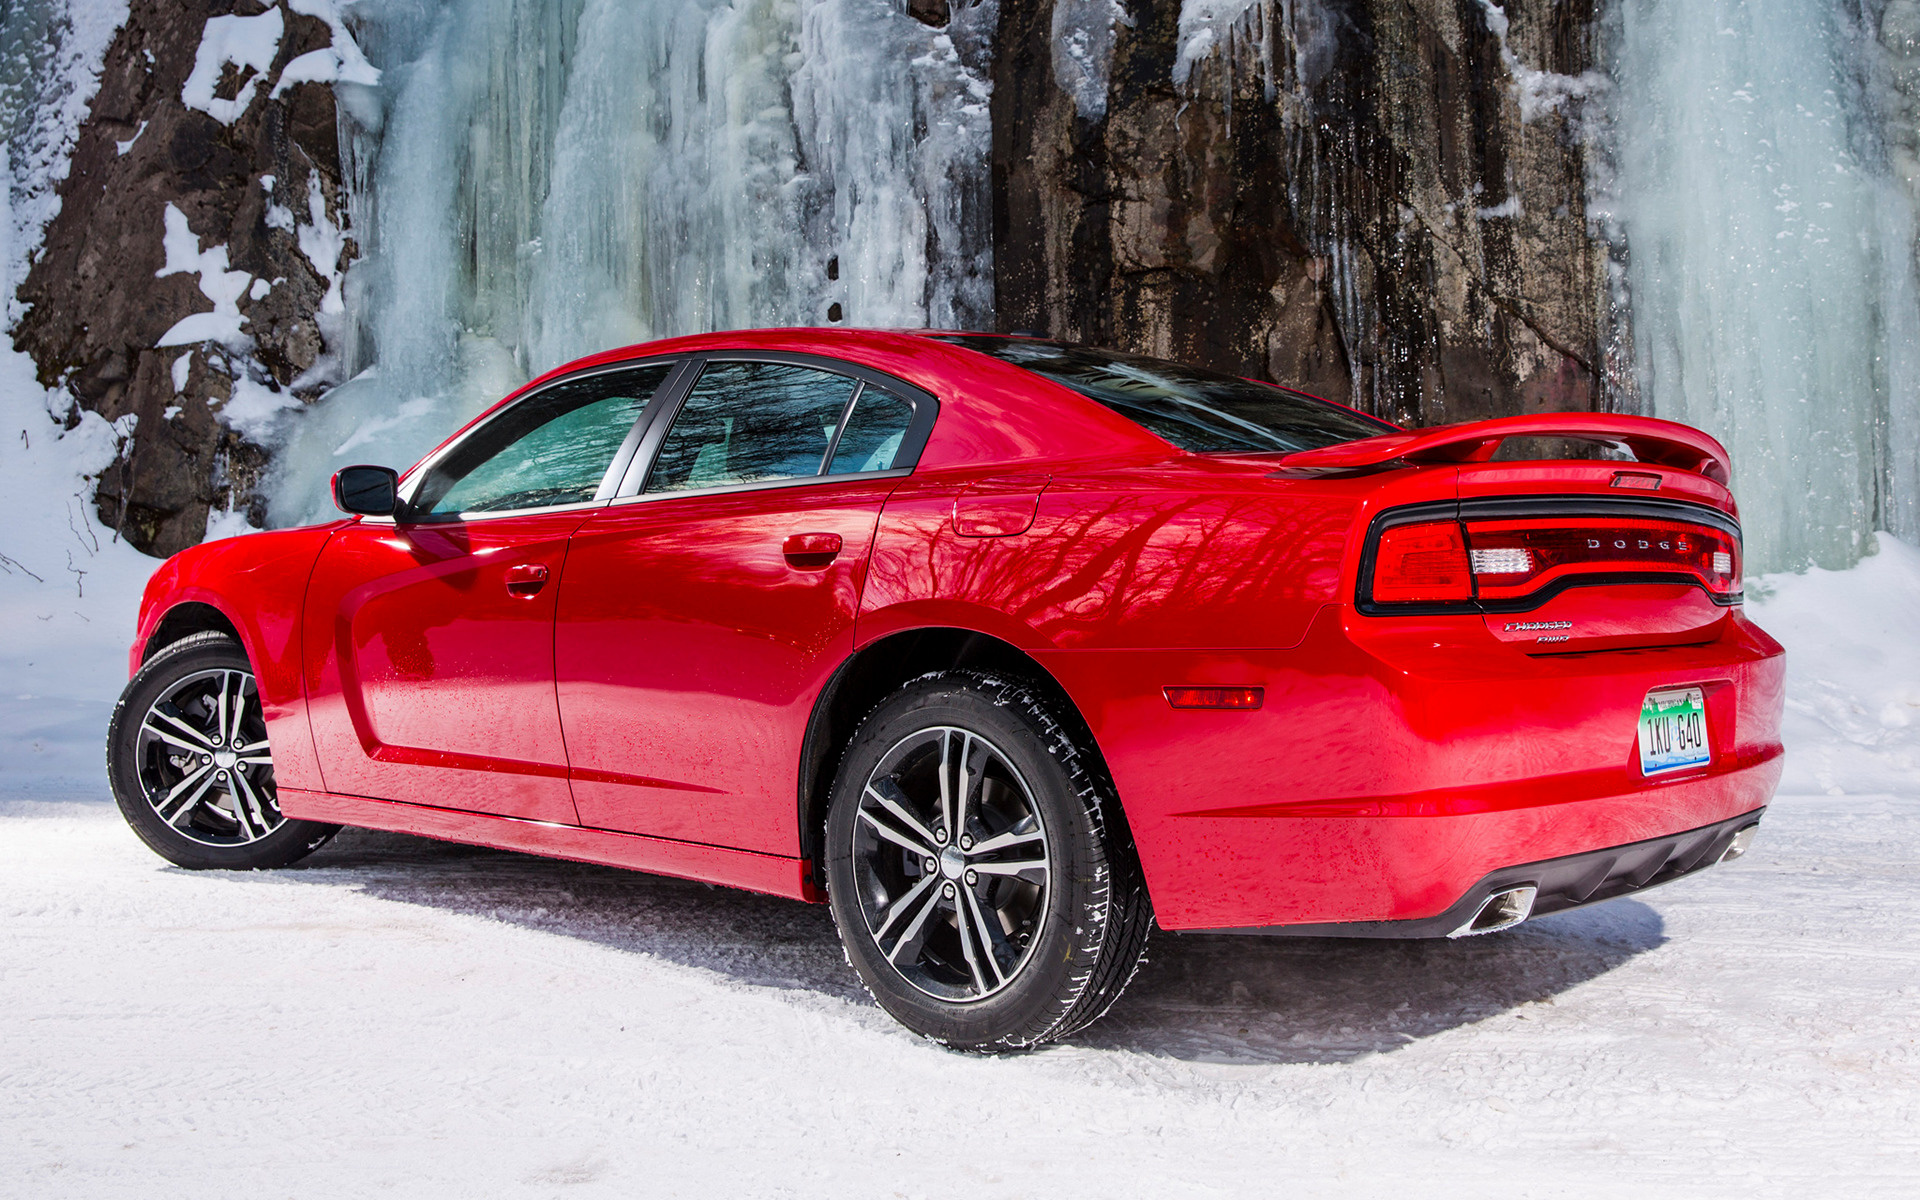 2013 Dodge Charger Awd Sport Wallpapers And Hd Images